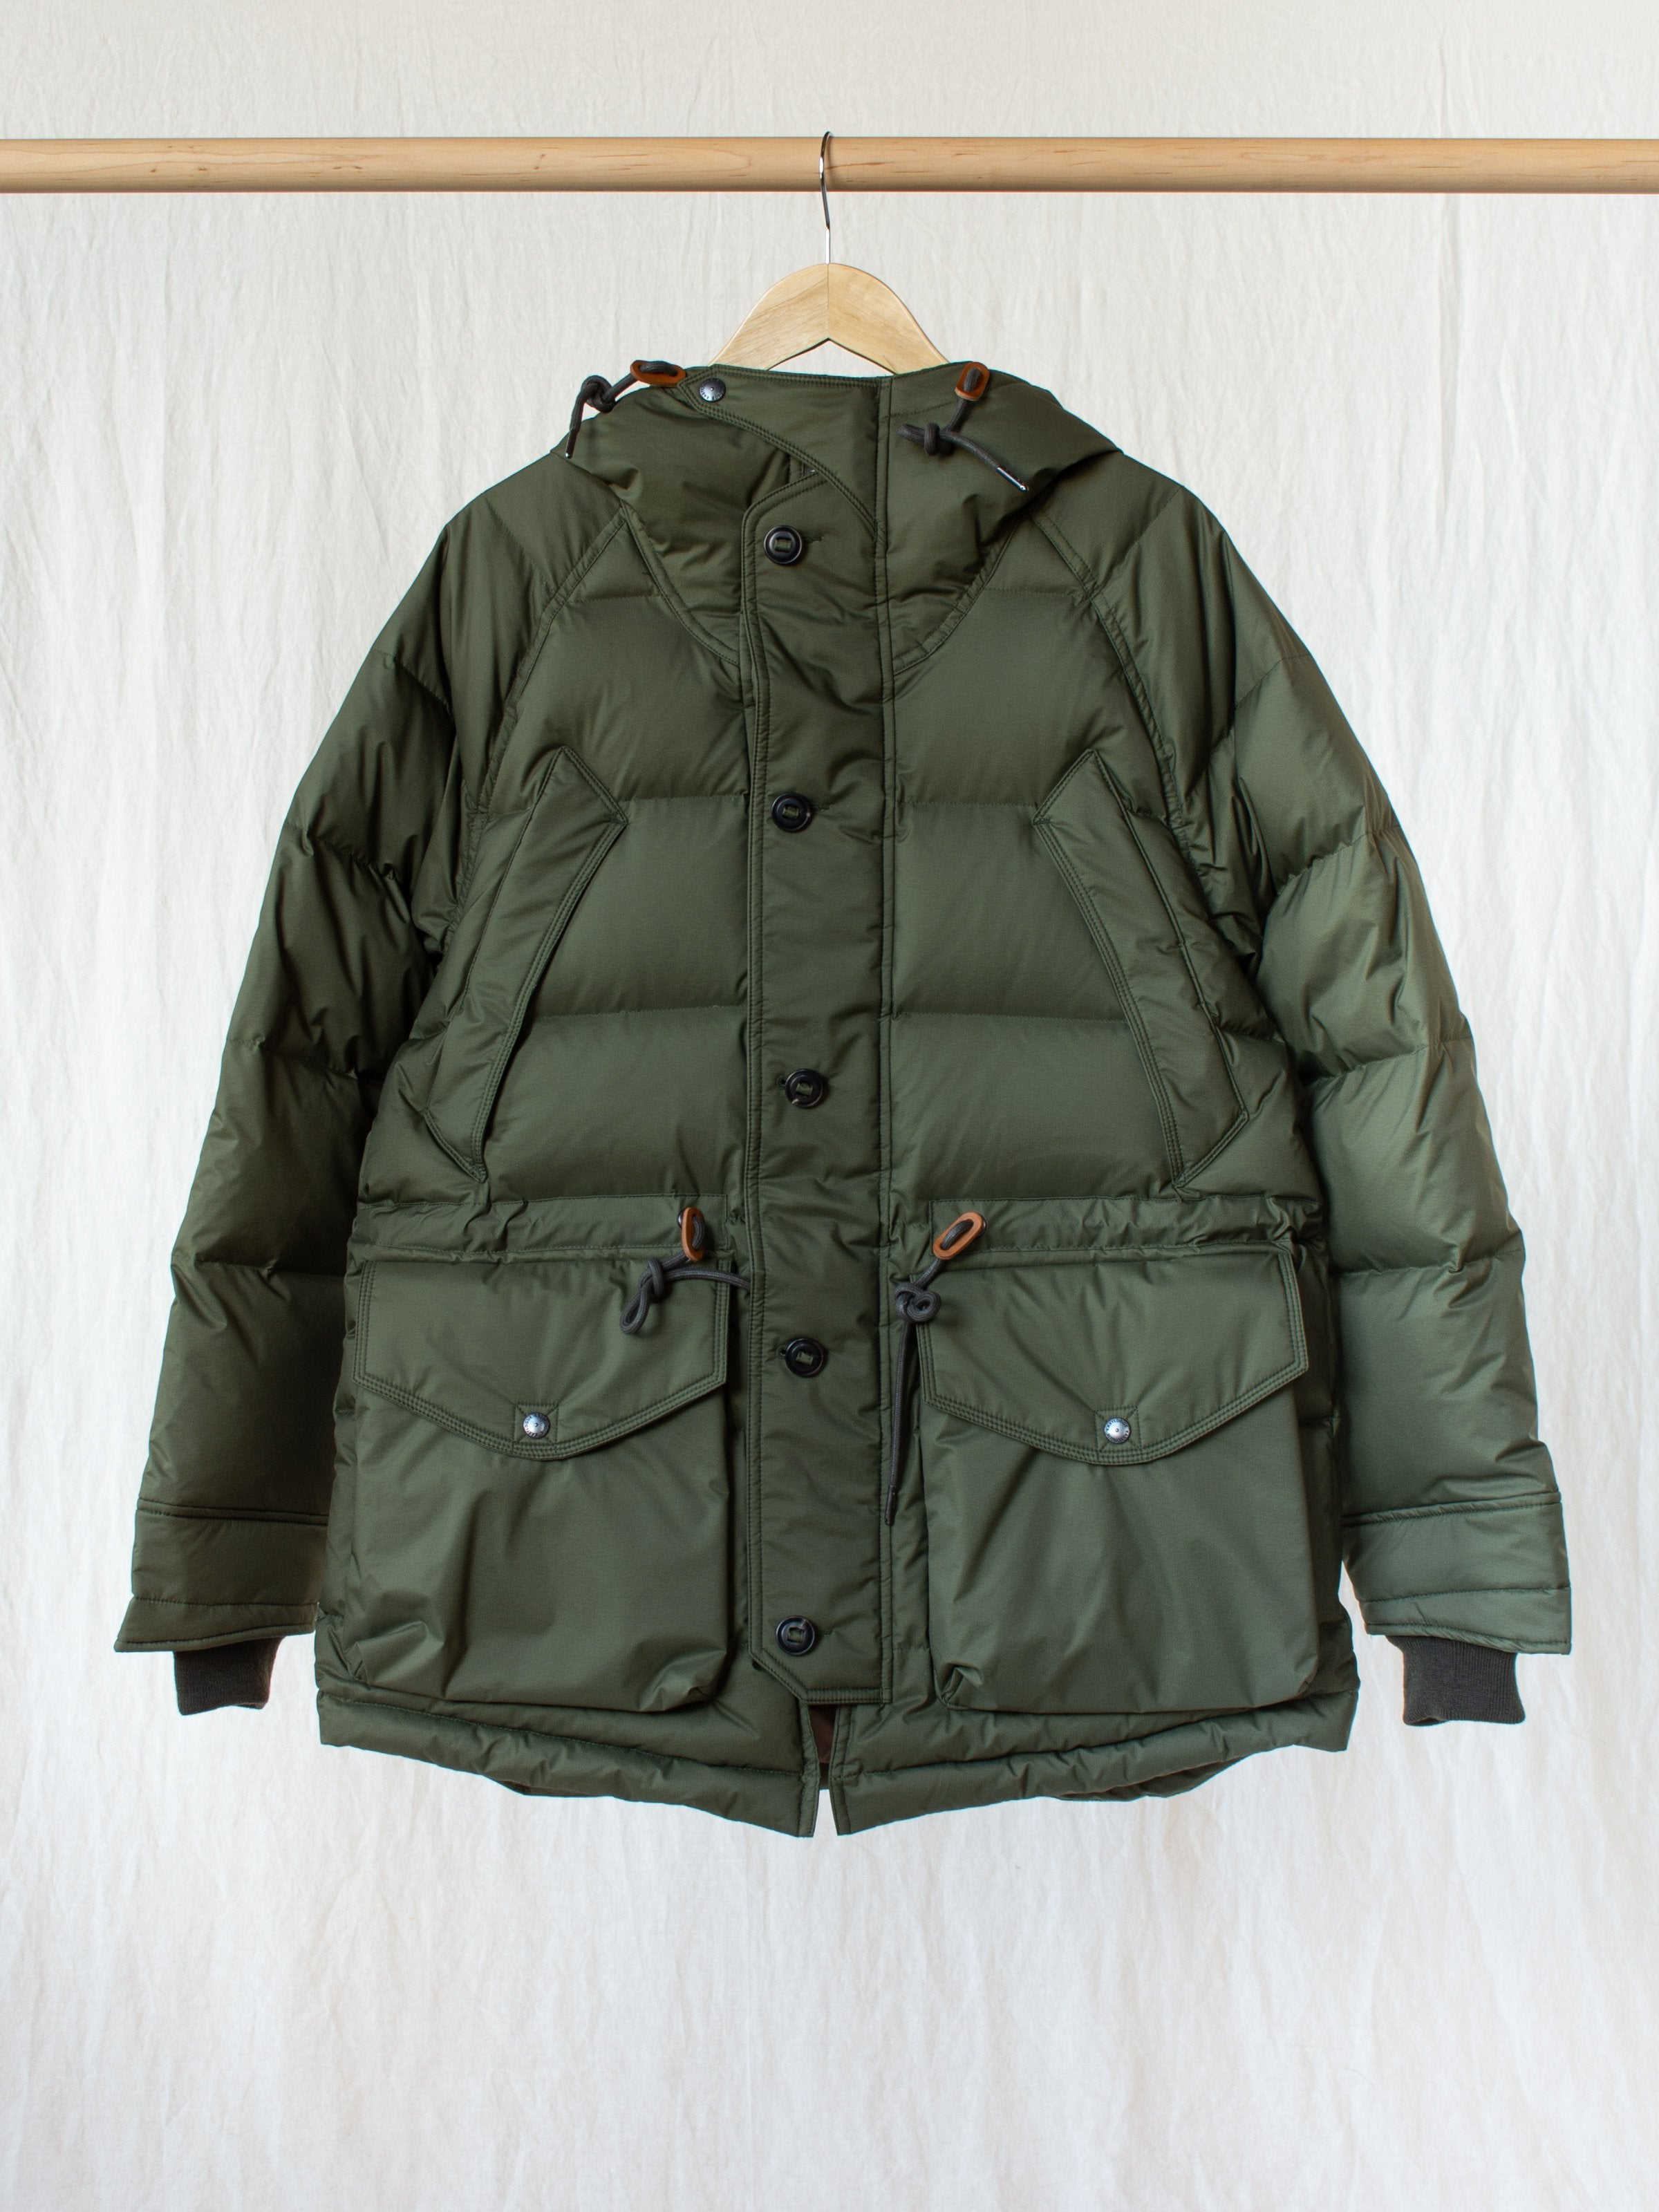 Namu Shop - Eastlogue Utility Shield Parka - Olive